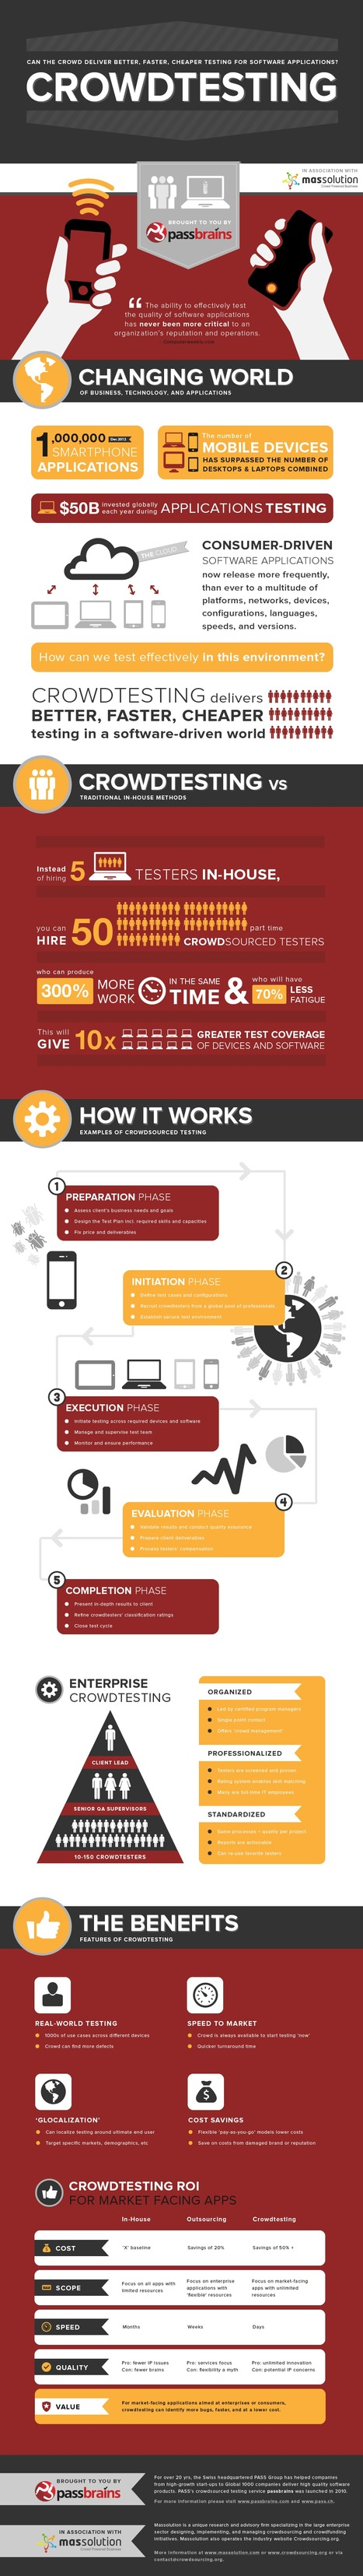 Crowdtesting: Better, Faster, Cheaper Infographic | Crowdsourcing Innovation for Generation X and Y | Scoop.it